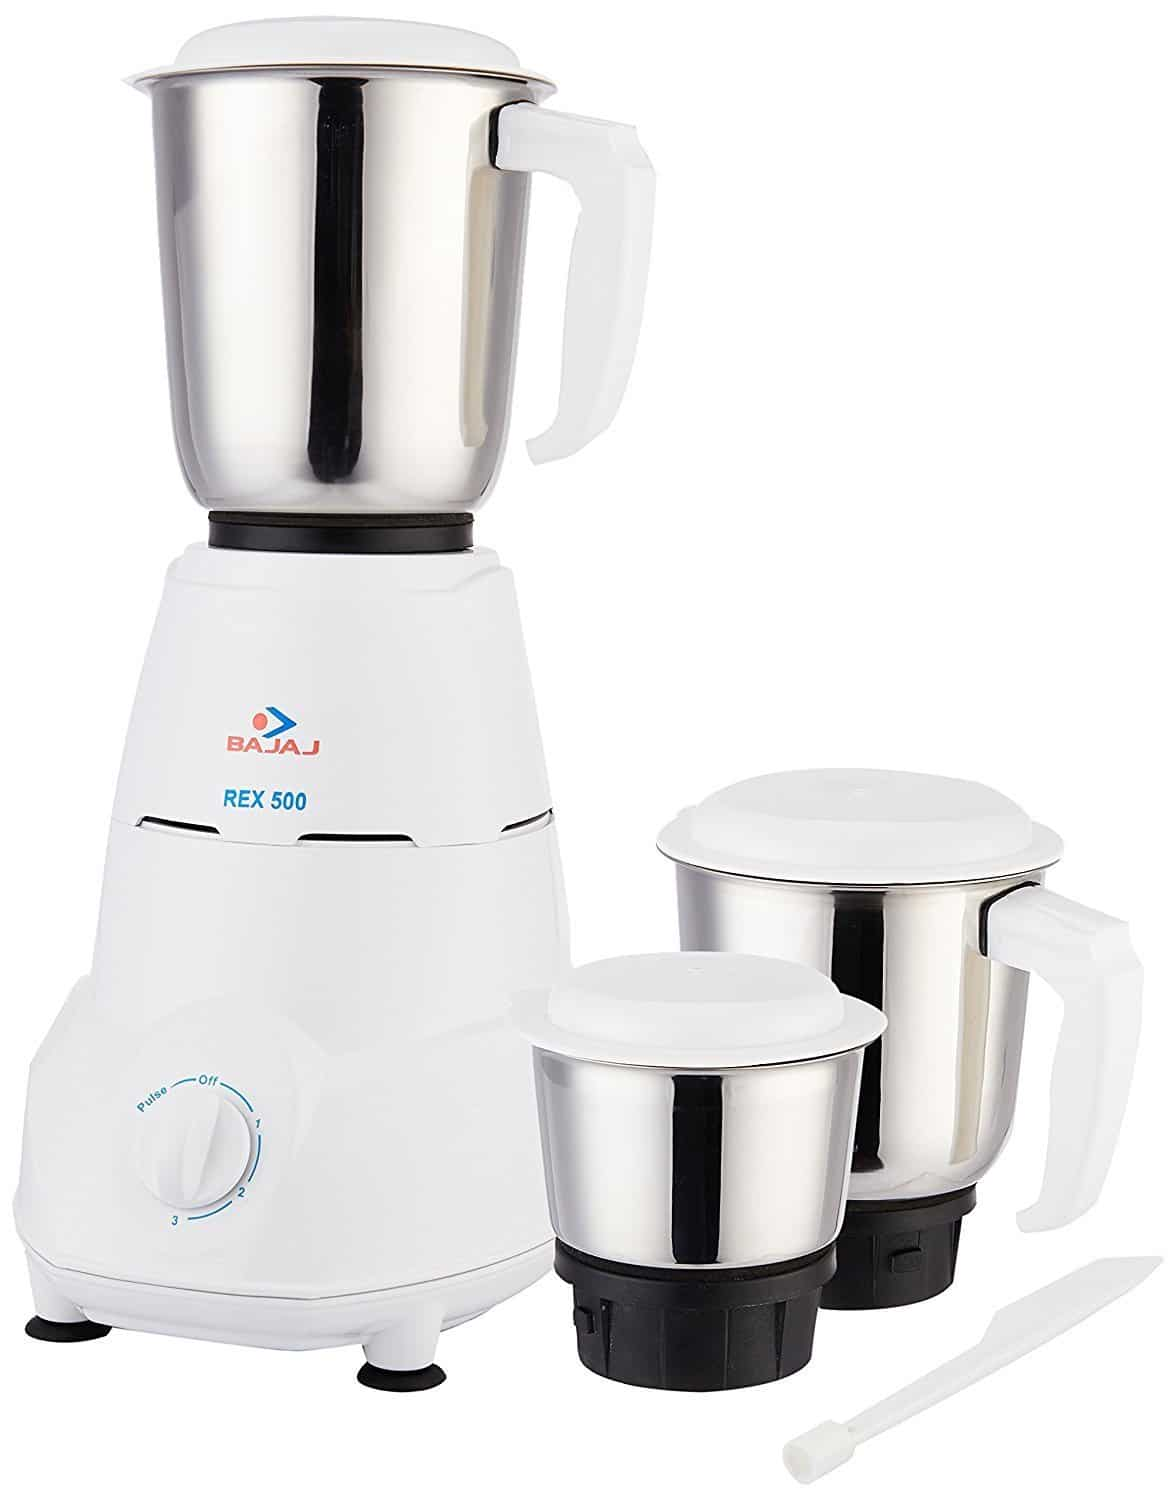 Mixer Grinder Blades : Top best mixer grinder in india reviews buyer